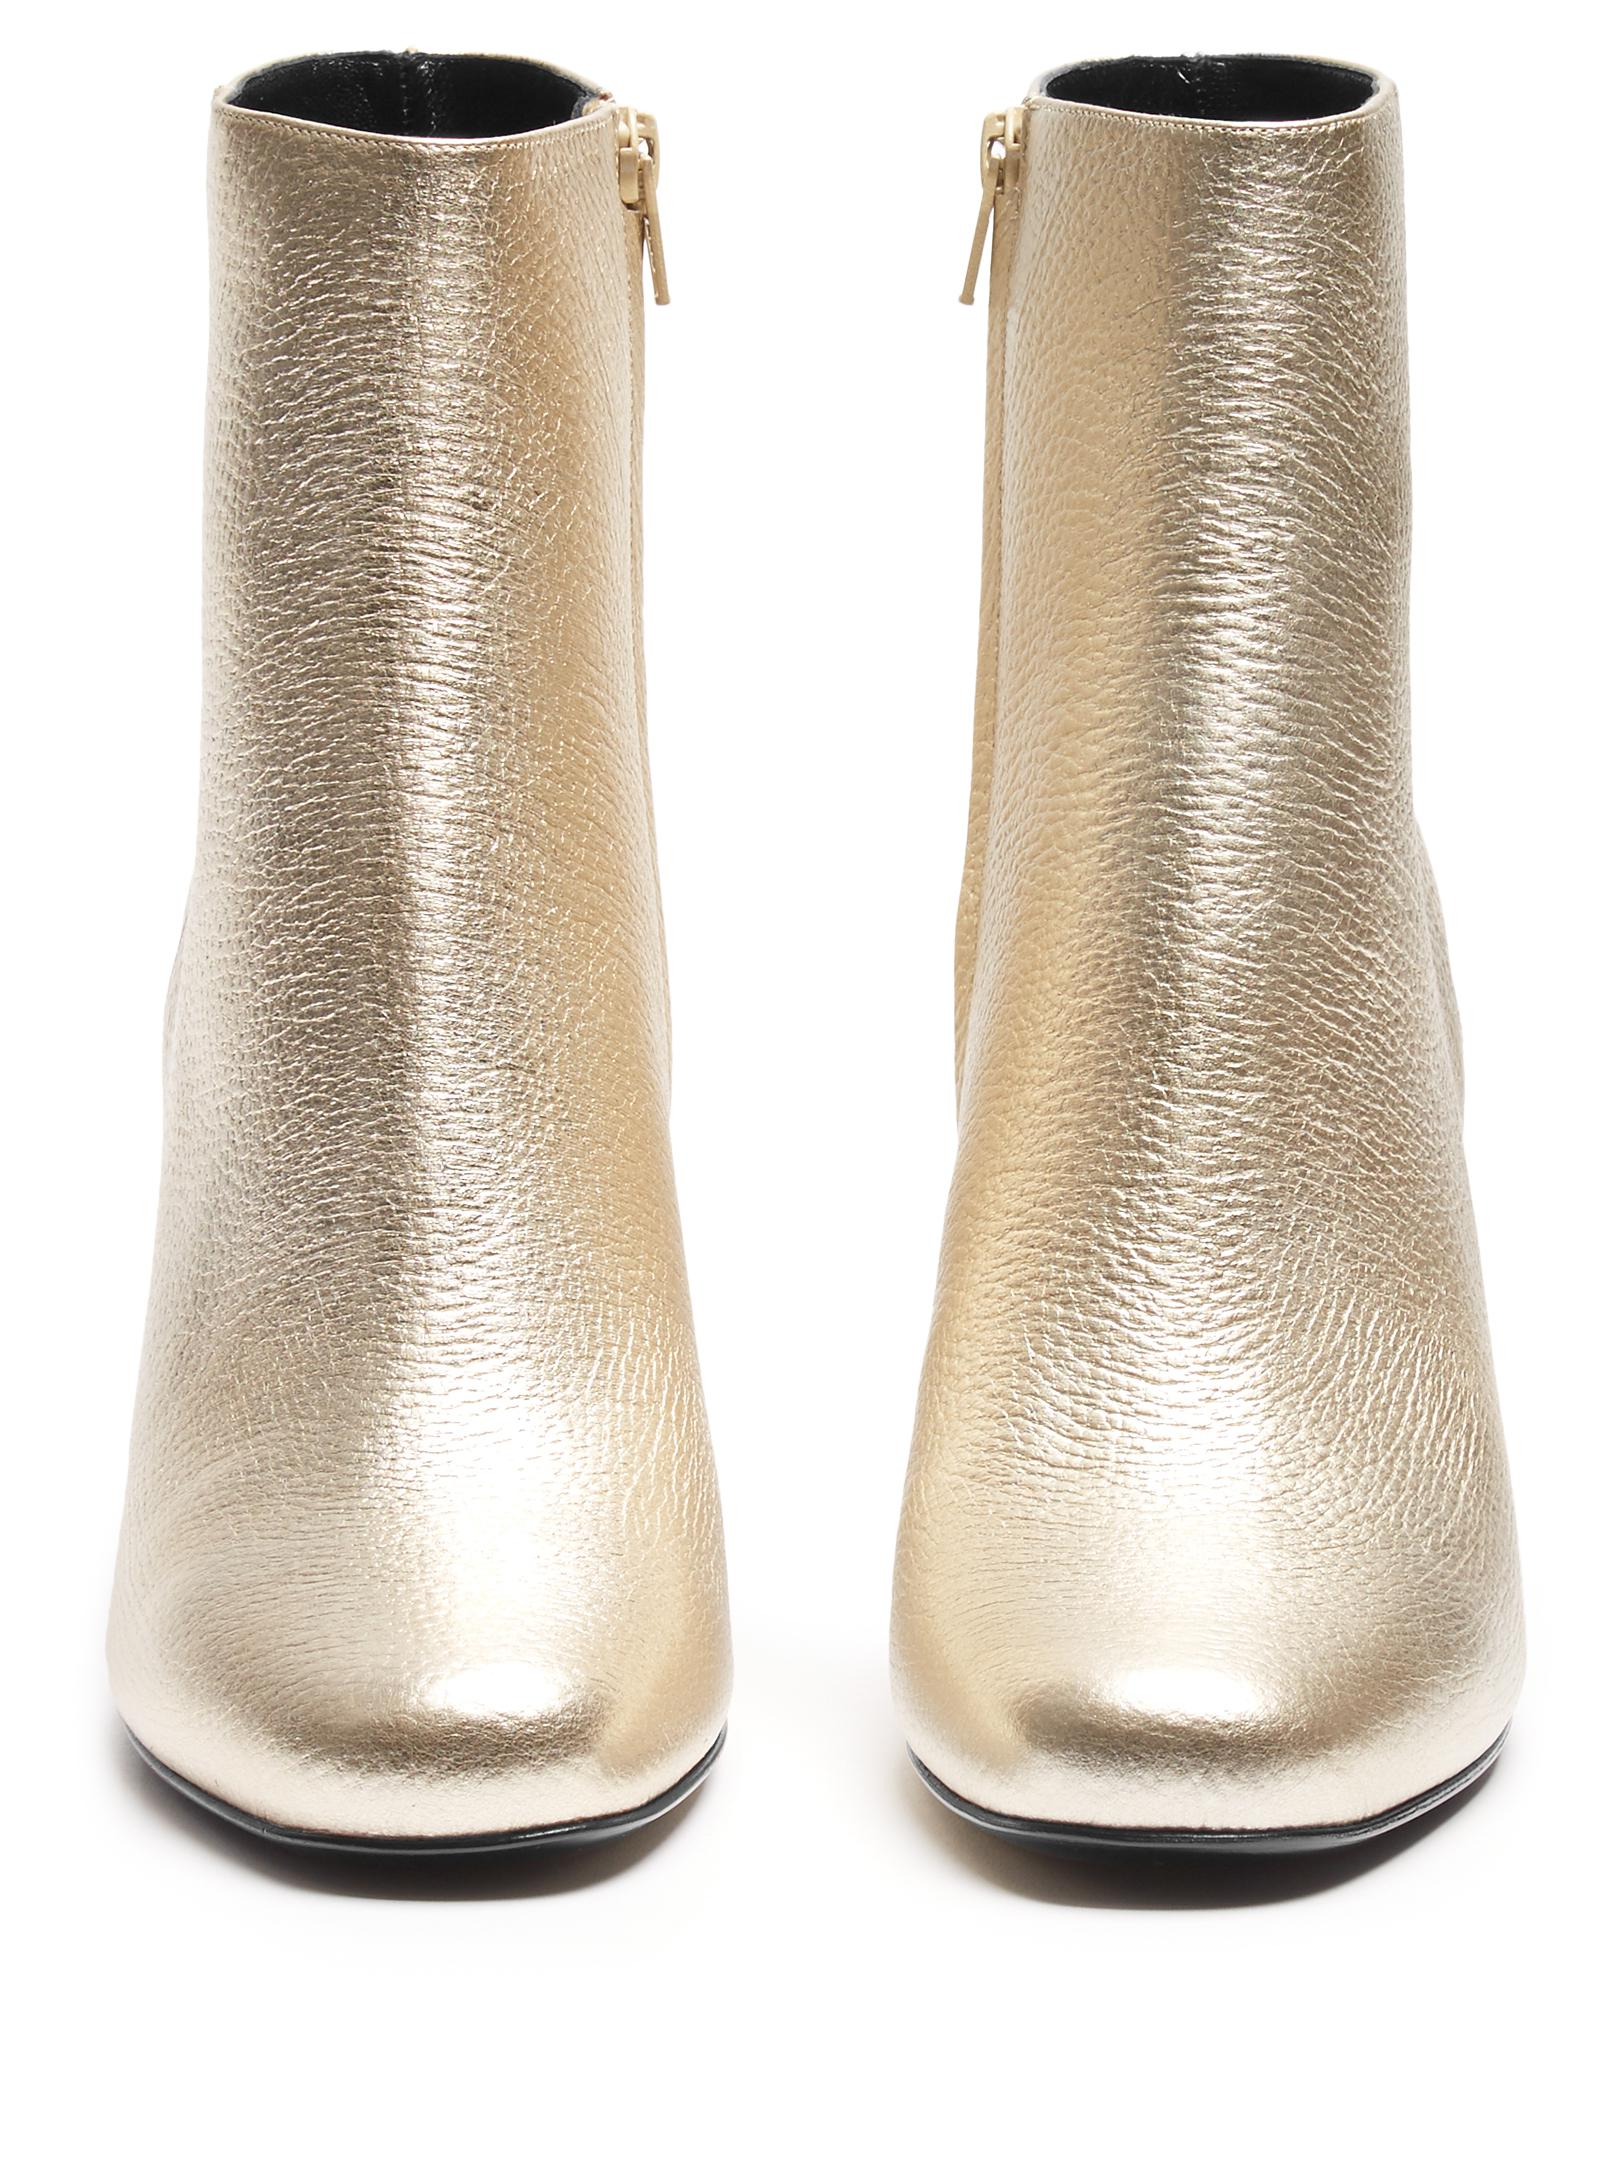 Lyst - Saint Laurent Babies Leather Ankle Boots in Metallic d80193ffe4a0